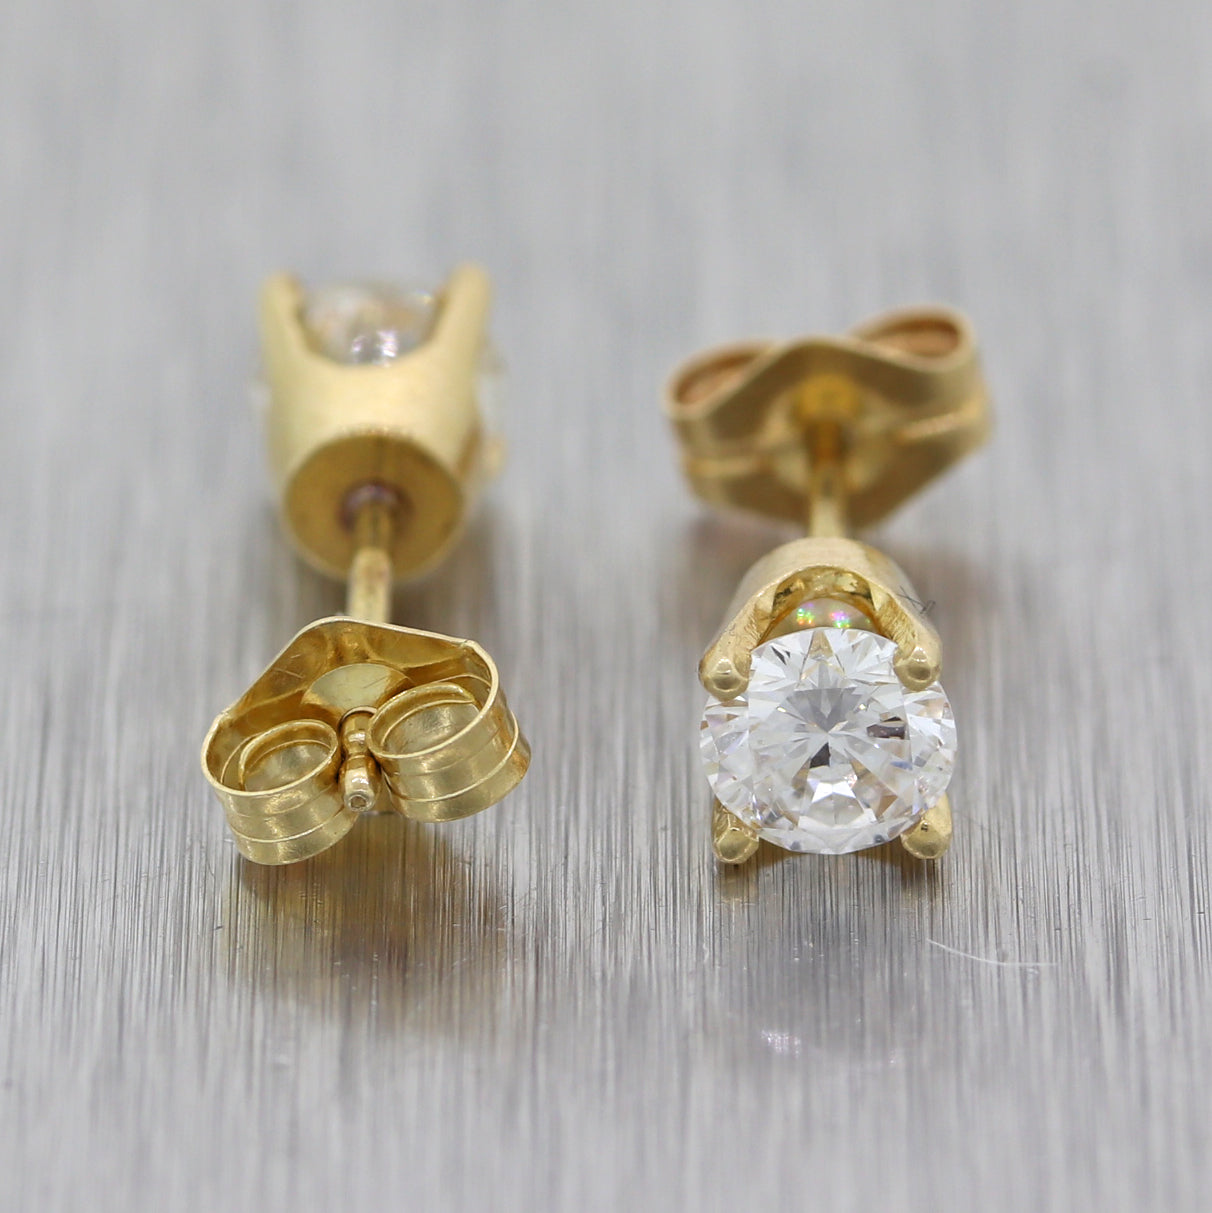 Modern 14k Yellow Gold 0.66ctw Diamond Stud Earrings